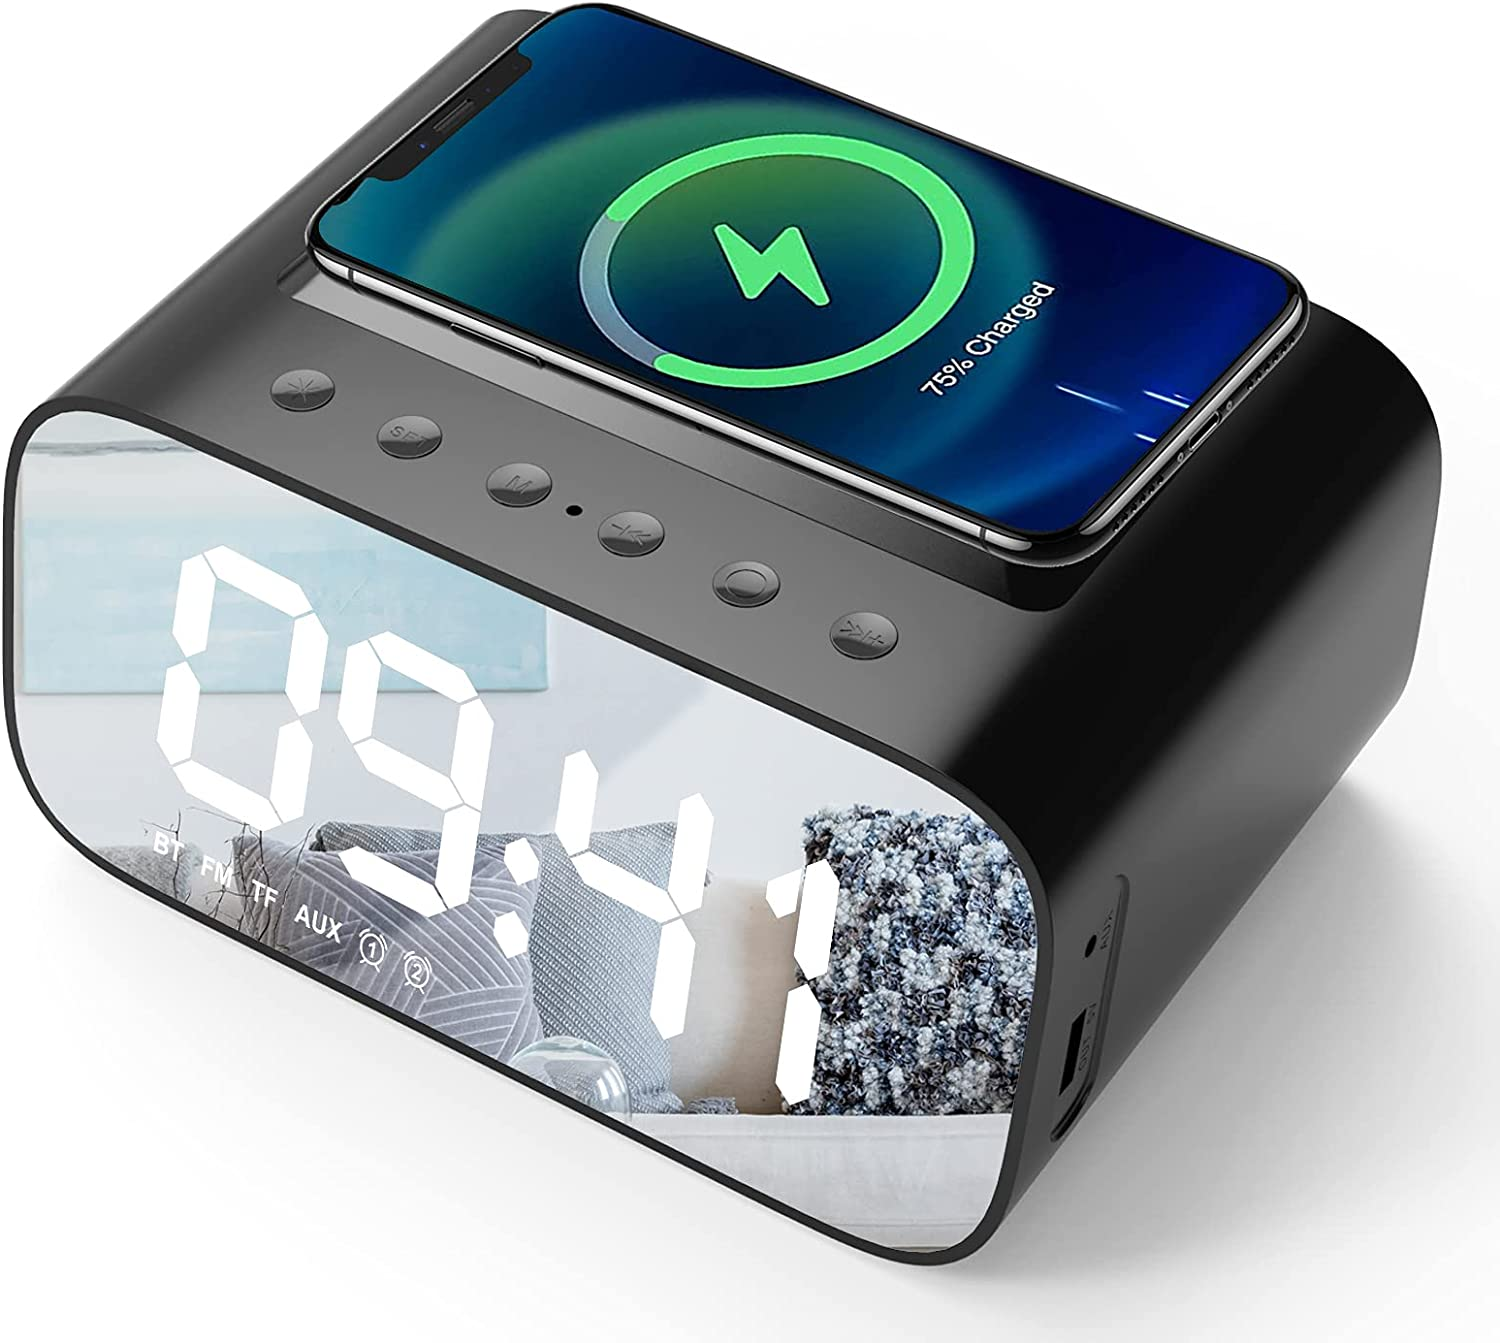 Lotuze Bedside Digital Alarm Clock with Wireless US Special sale item Popularity and Charging